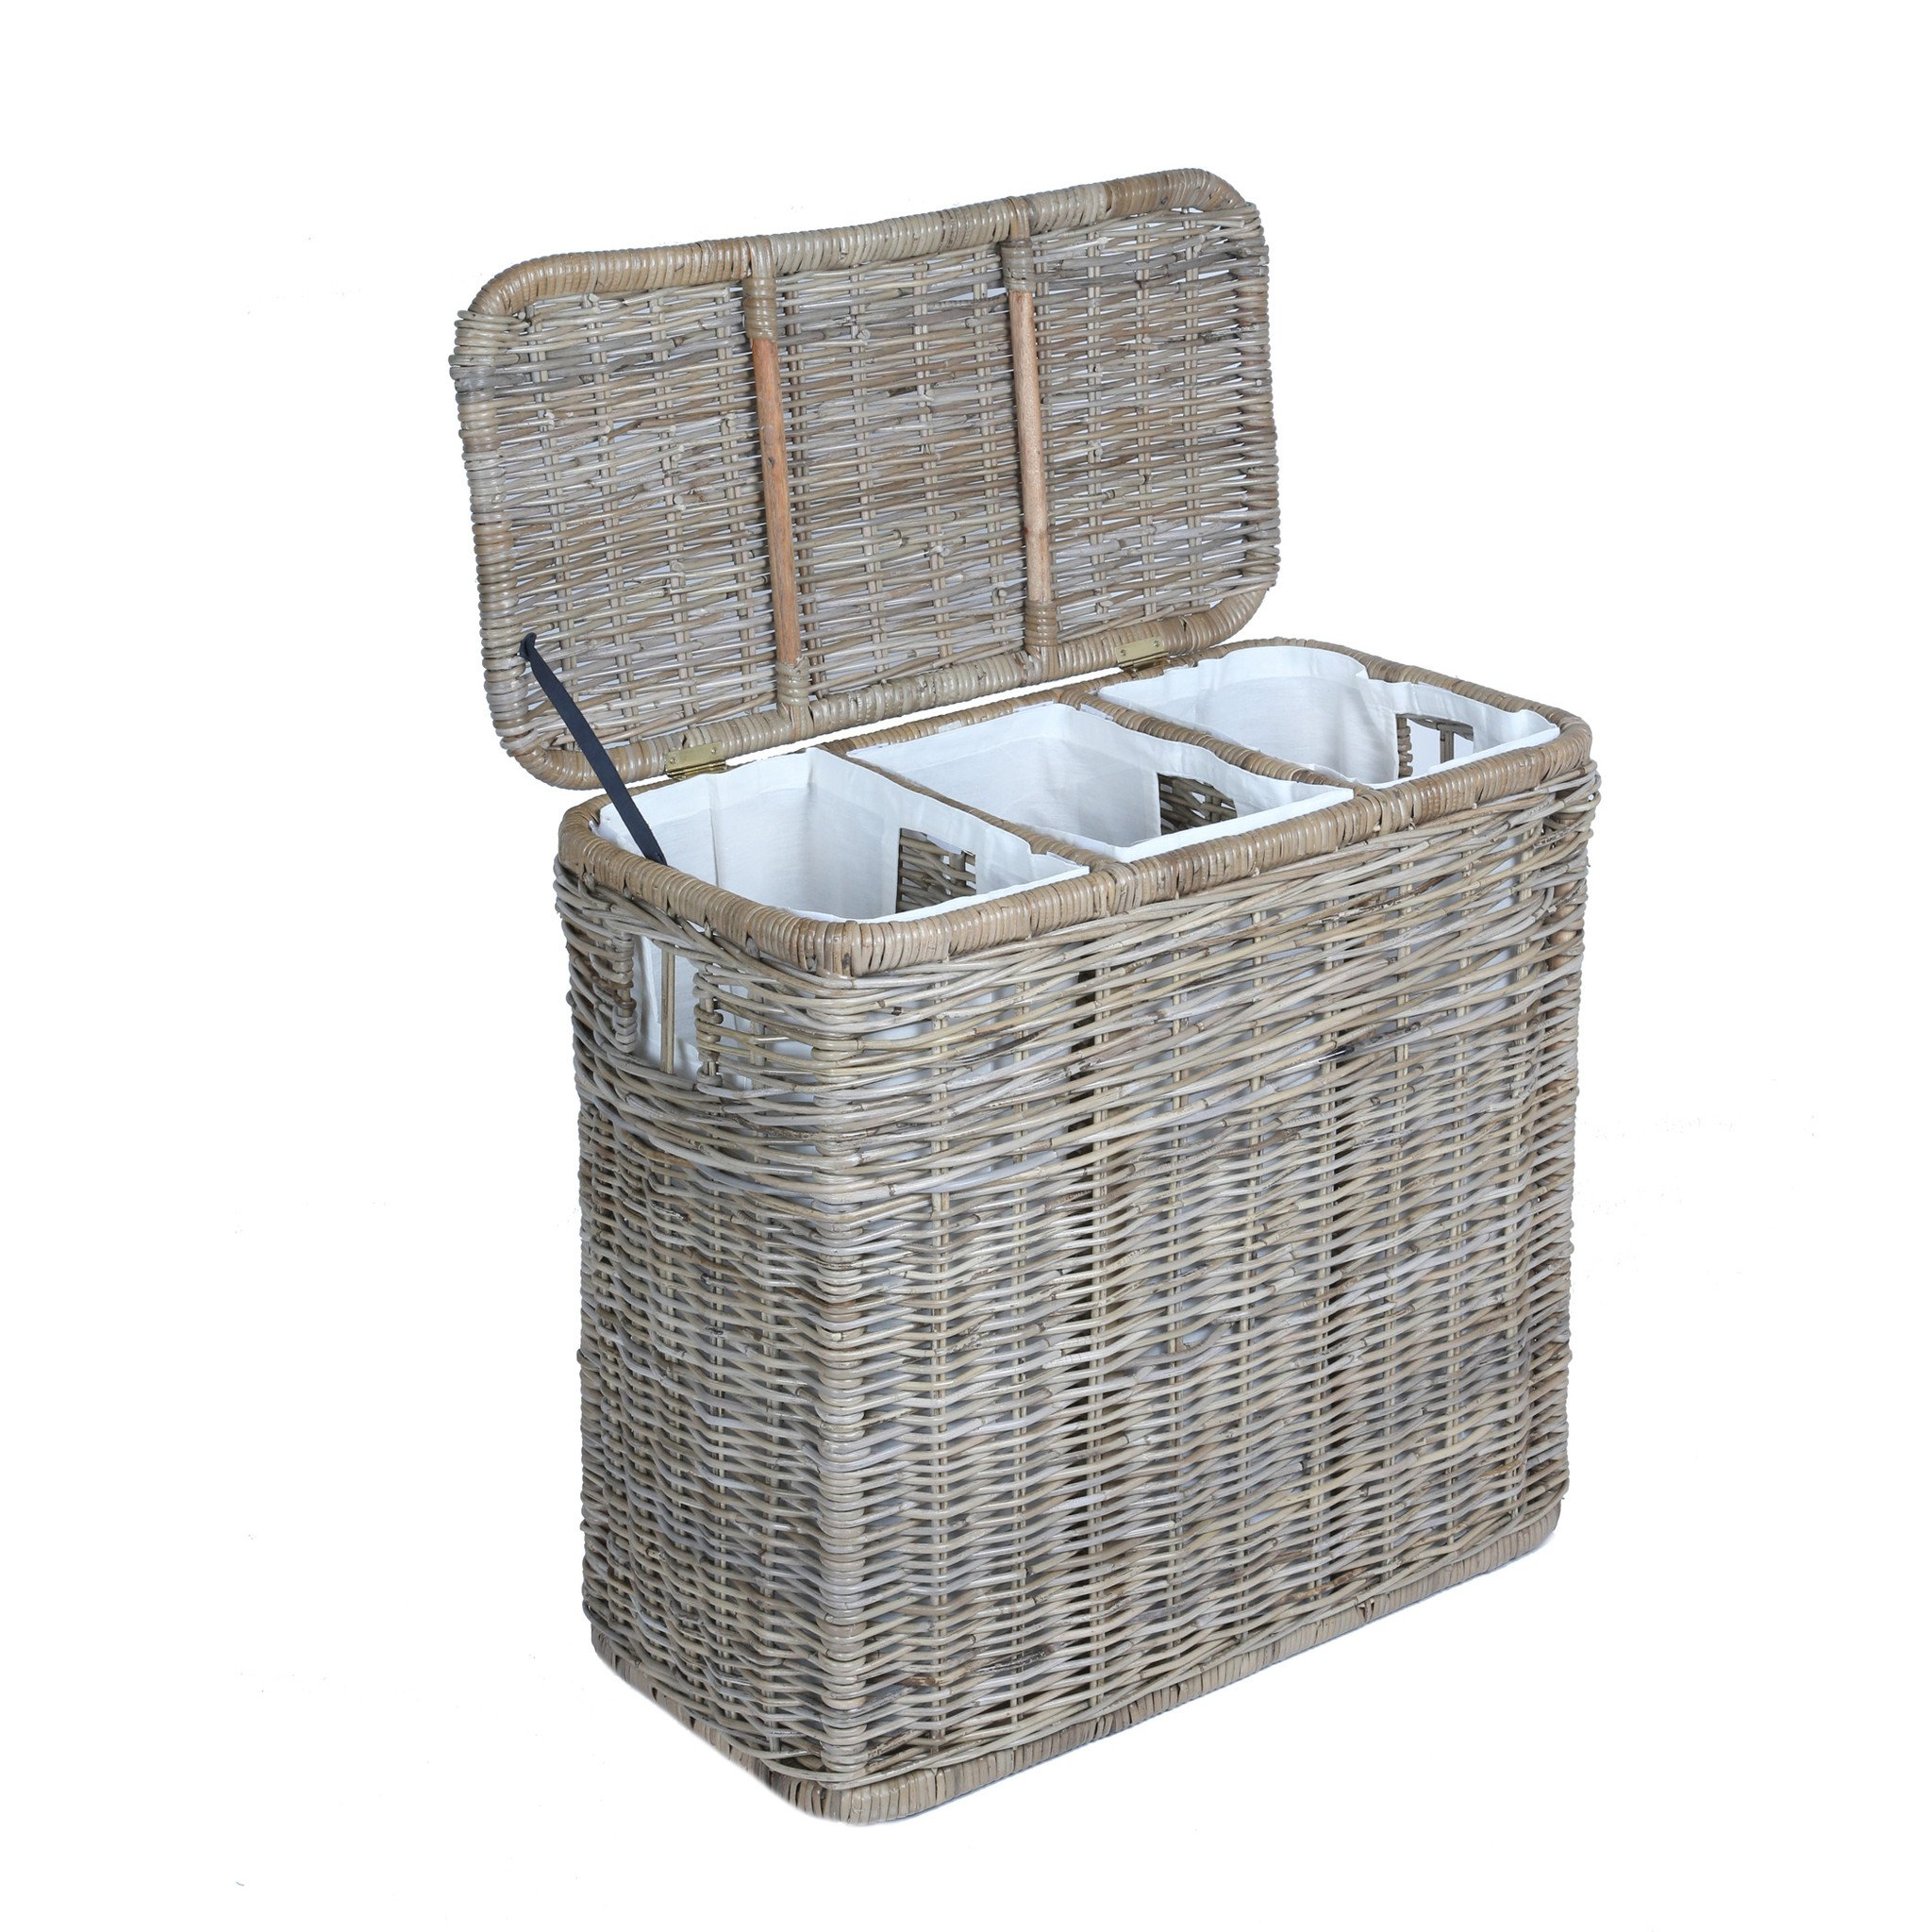 Contemporary laundry hampers 3-compartment kubu wicker laundry hamper in serene grey with lid open | the ctlblza